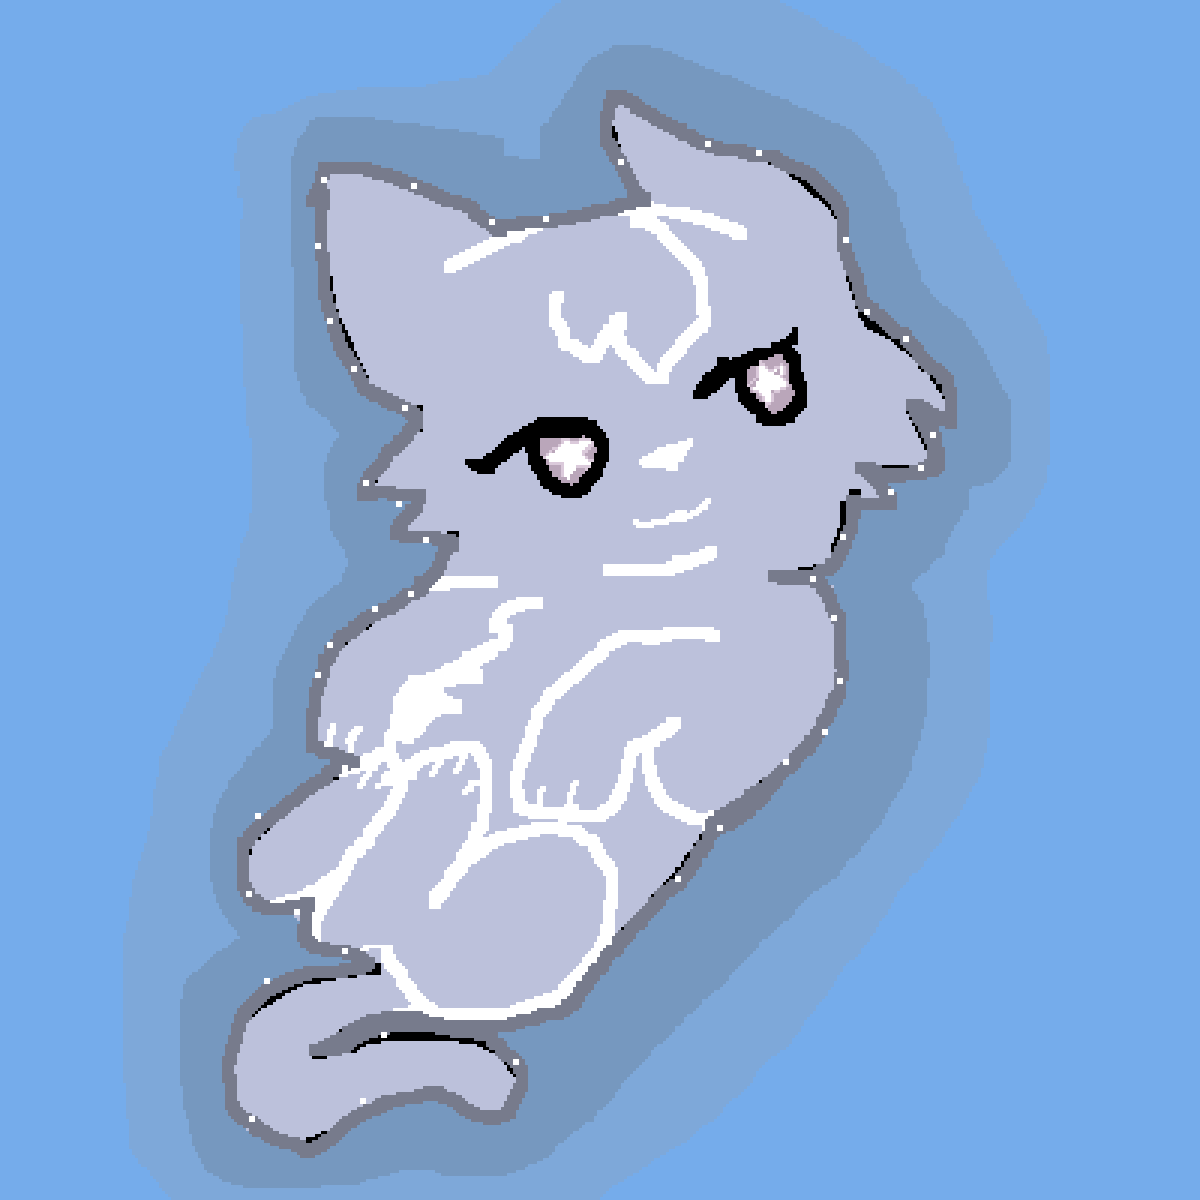 Billowingkit in Starclan by Lilcatlover55